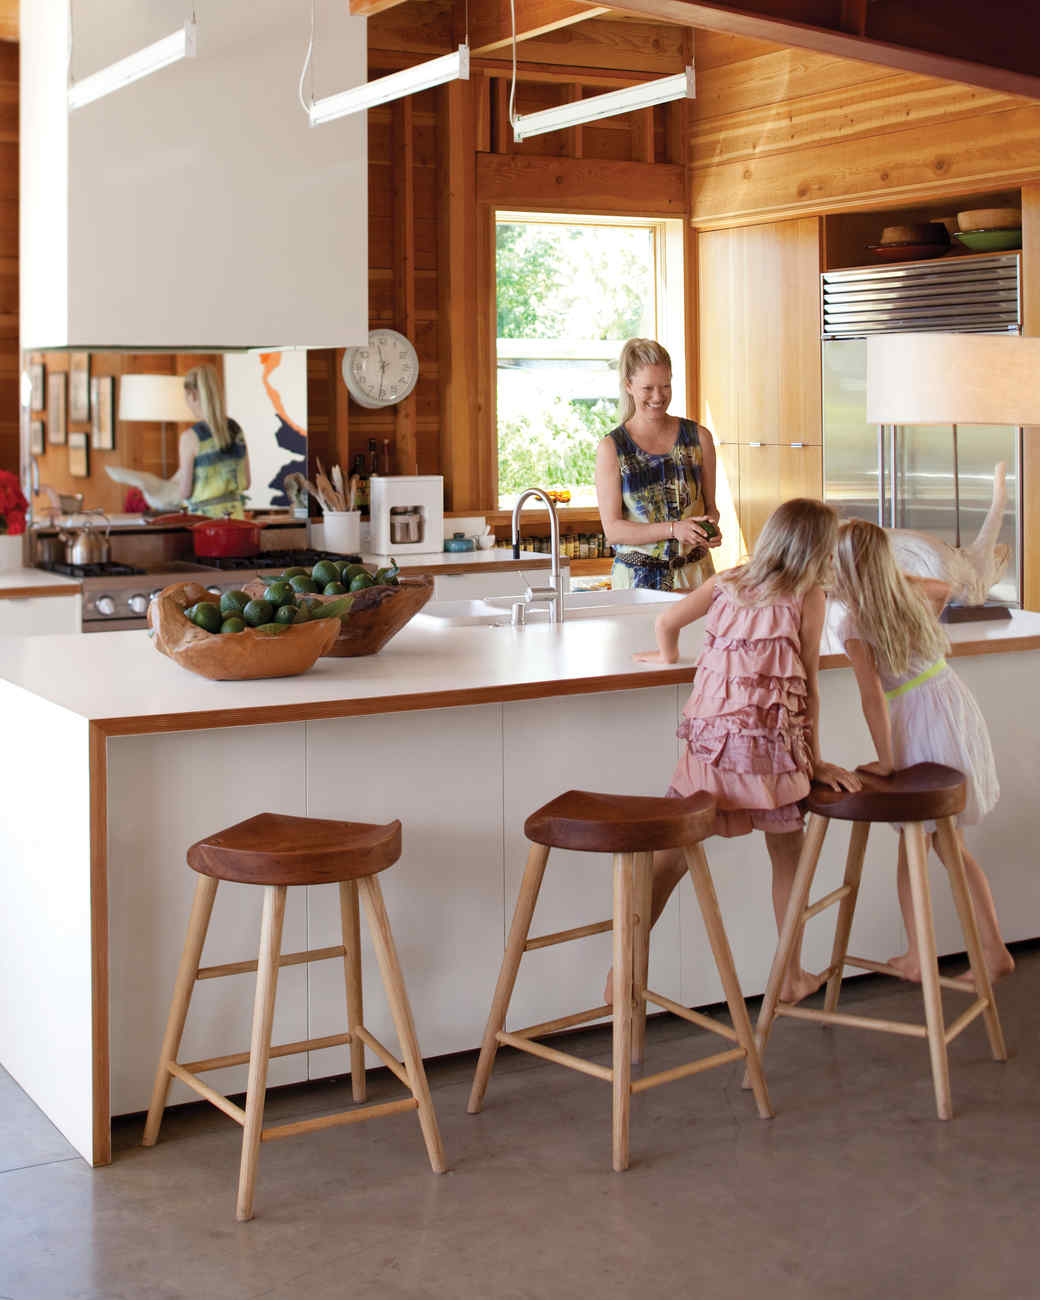 beach-house-kitchen-0811mld107442.jpg